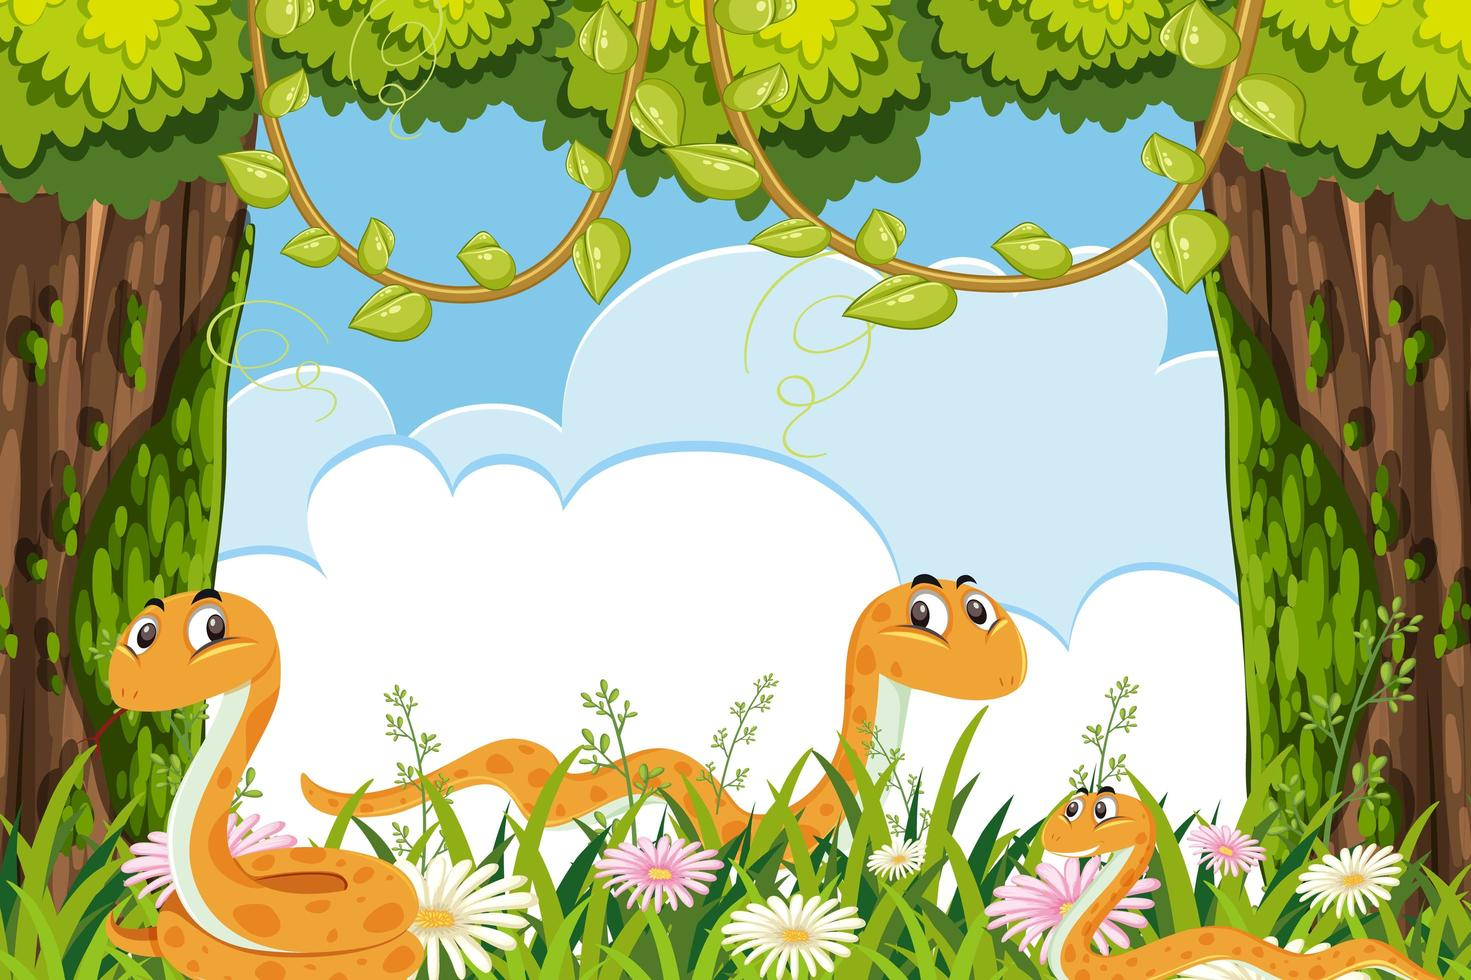 Yellow snakes in jungle scene vector